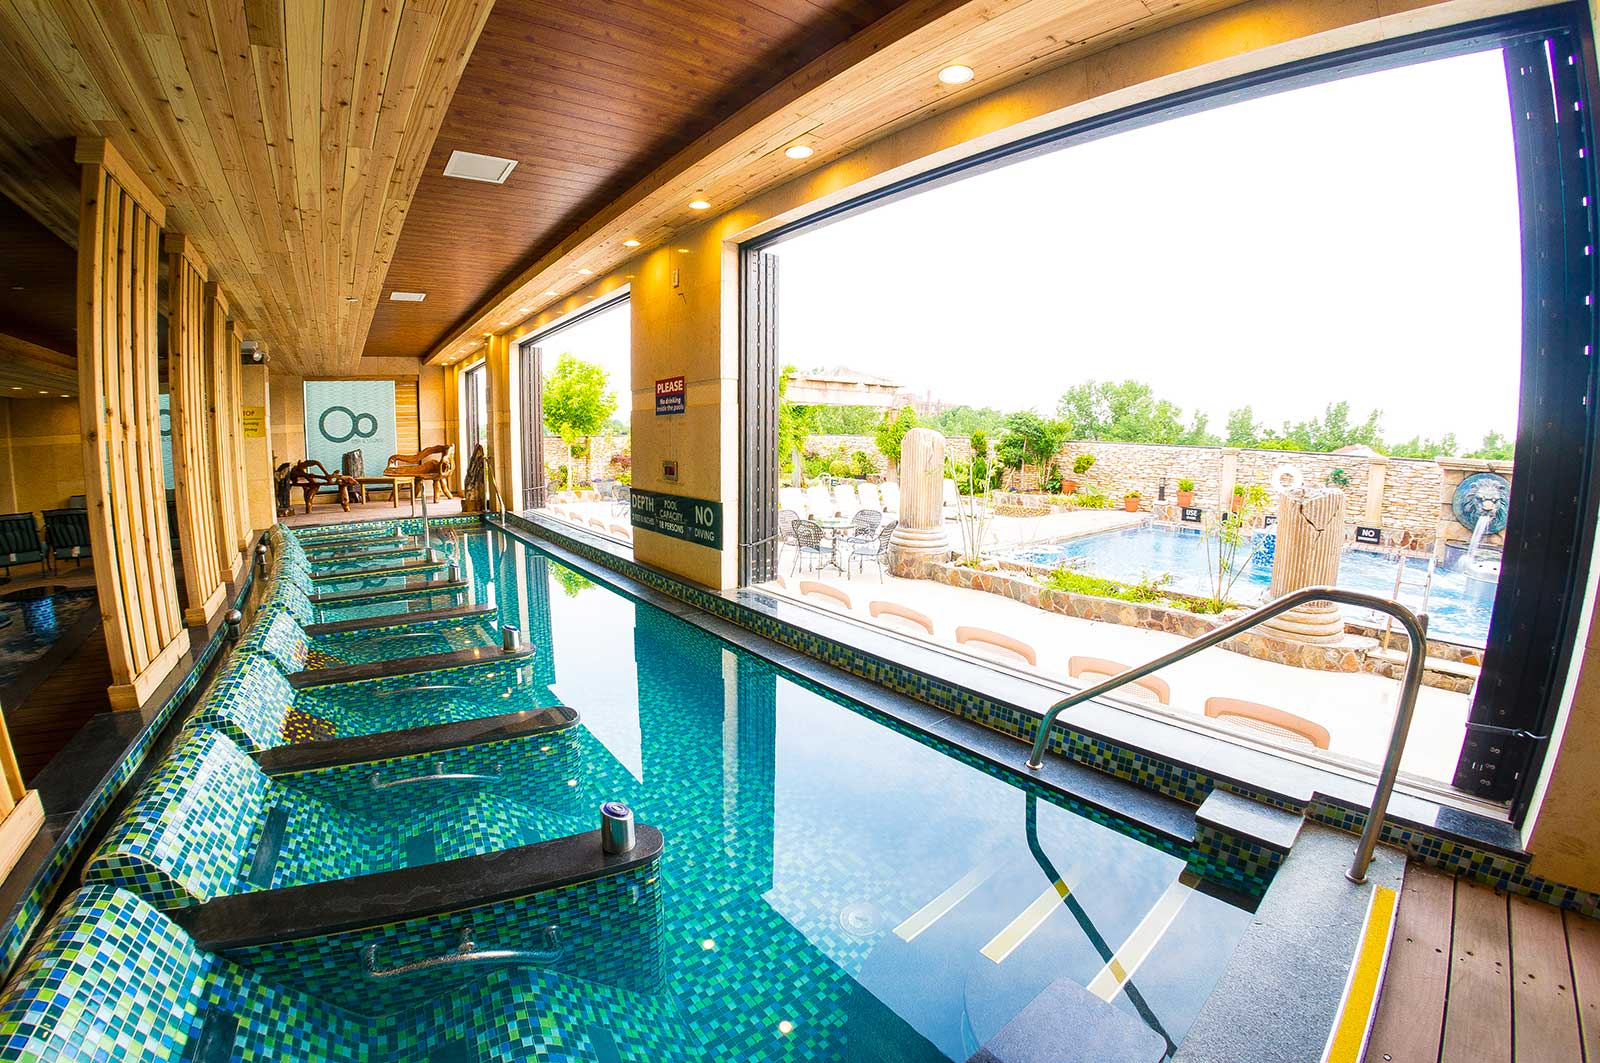 Dallas Day Spa With Pool